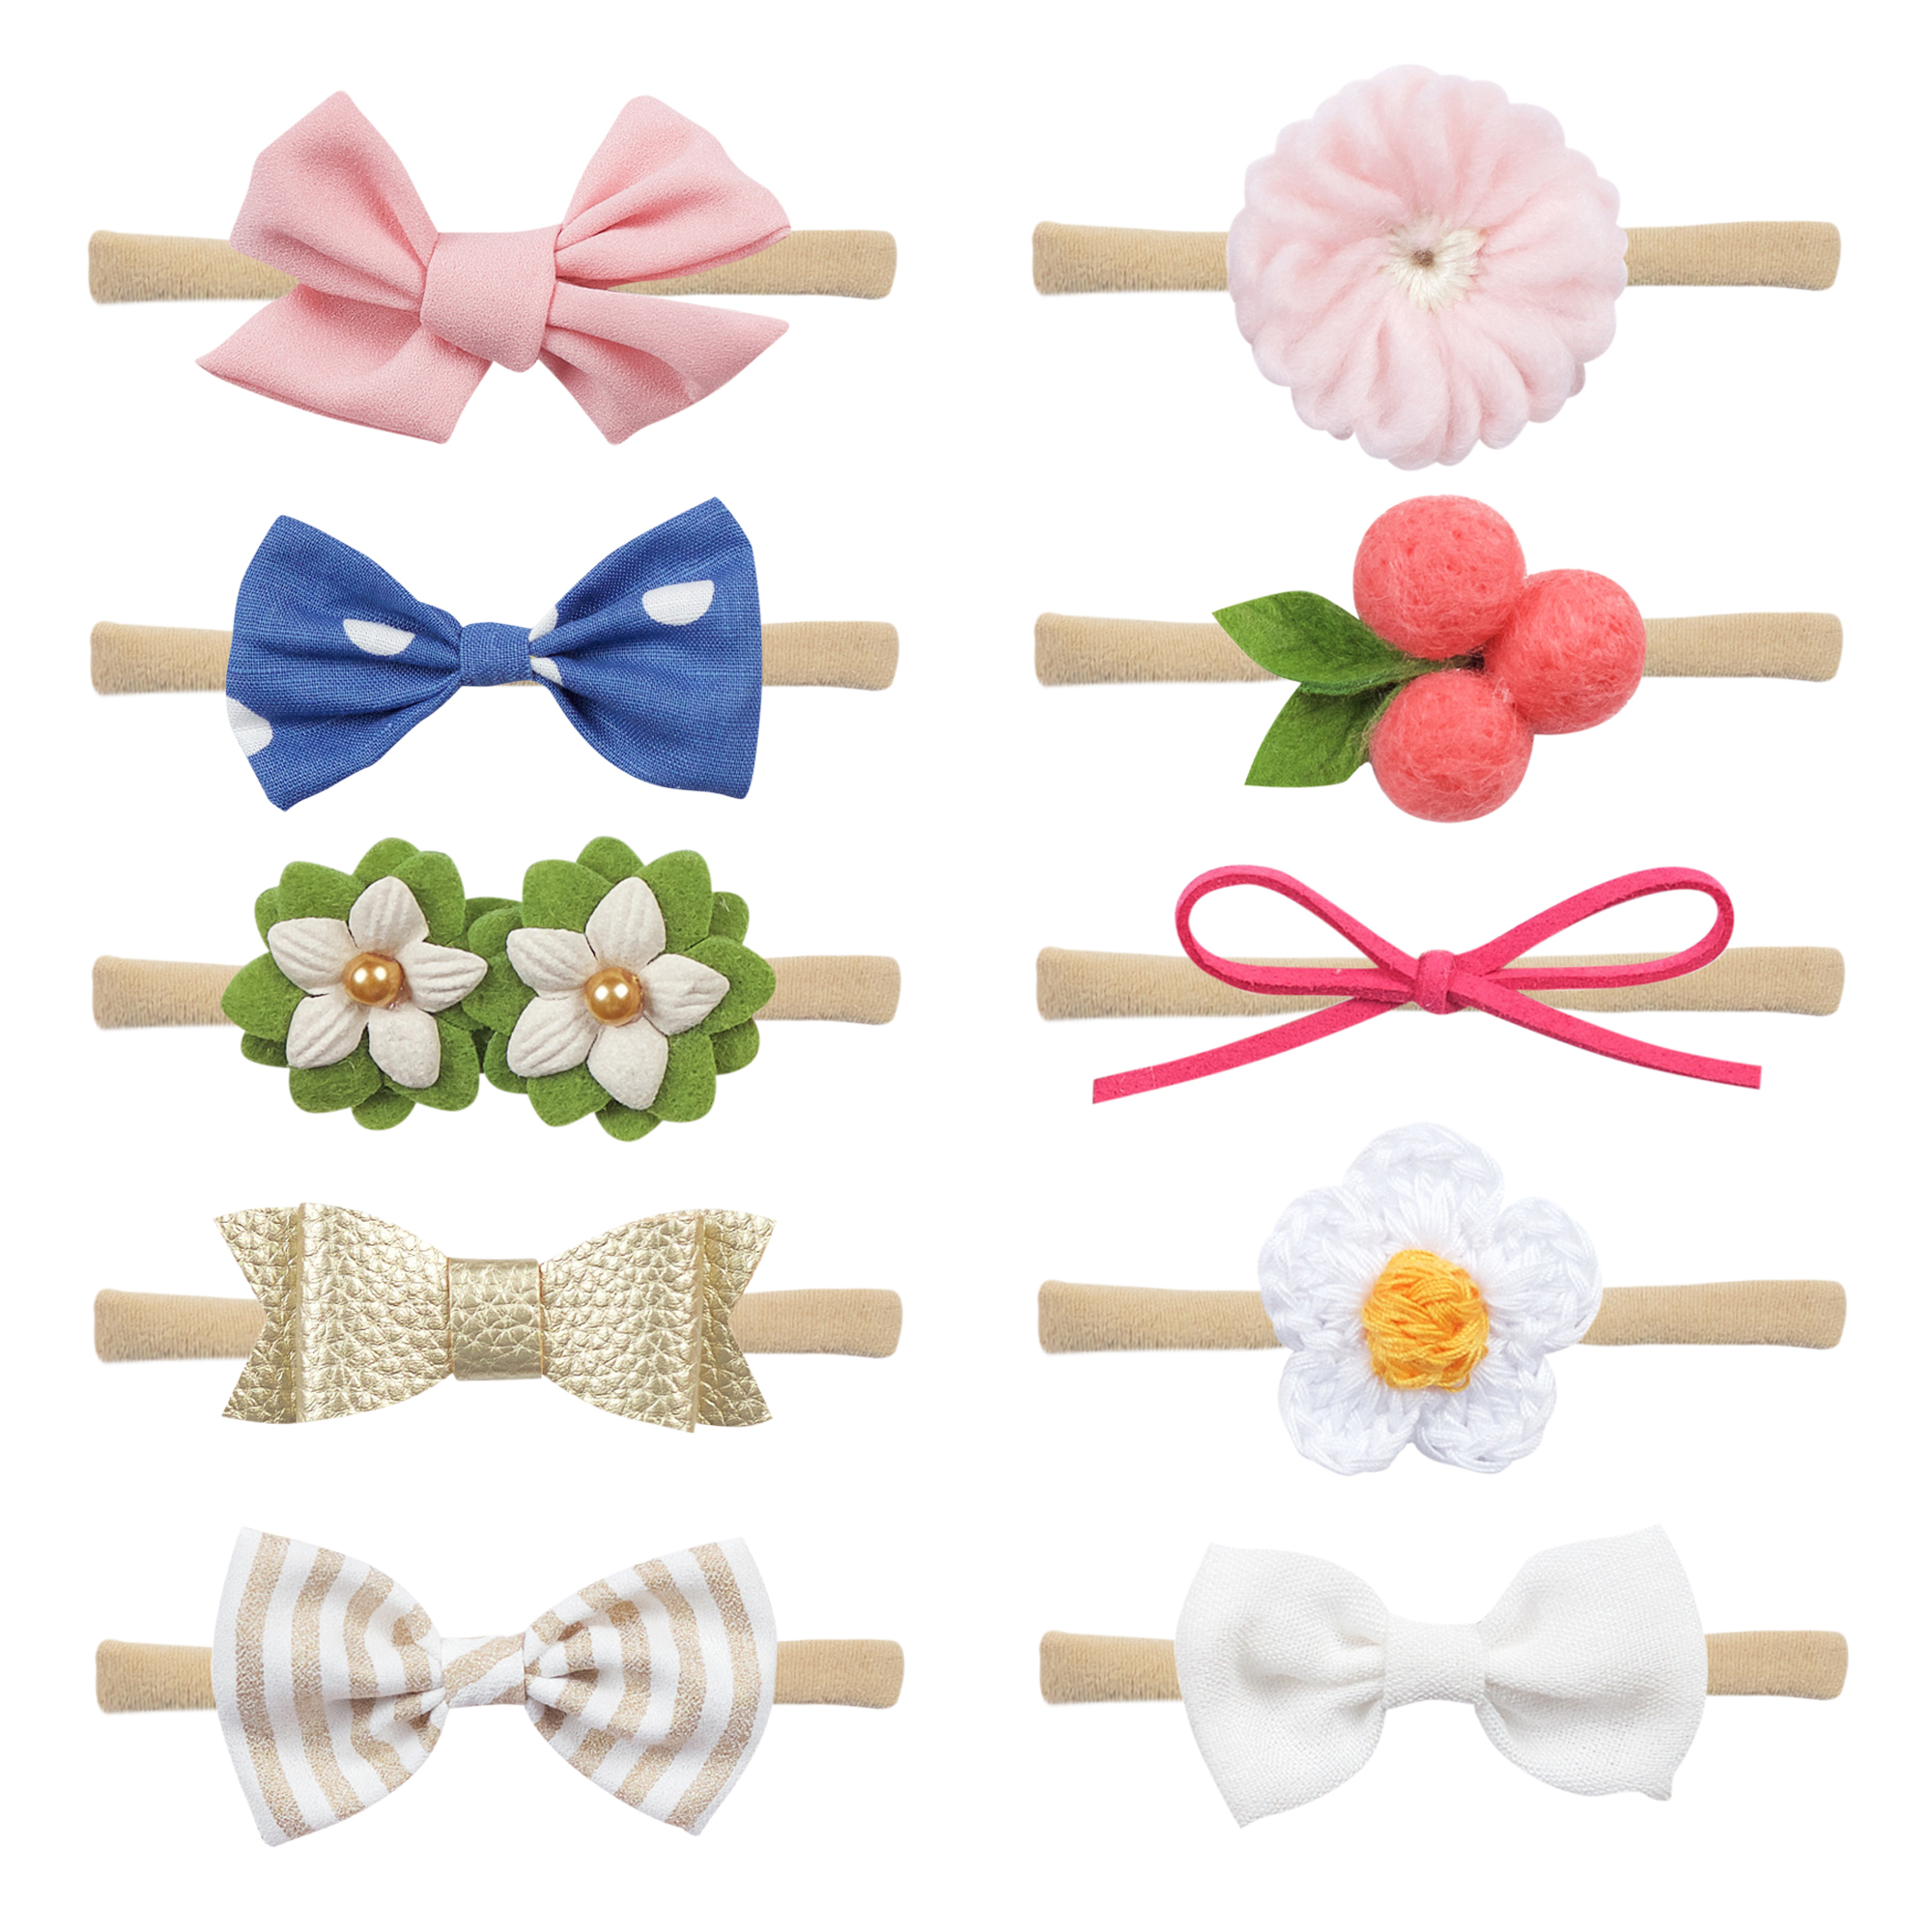 POKIENE 10 PCS Baby Headband Assorted Set Super Soft Baby Girl Hair Band Elastic Flowers Head Band for 0.5-3 Years Birthday Baby Shower Gift